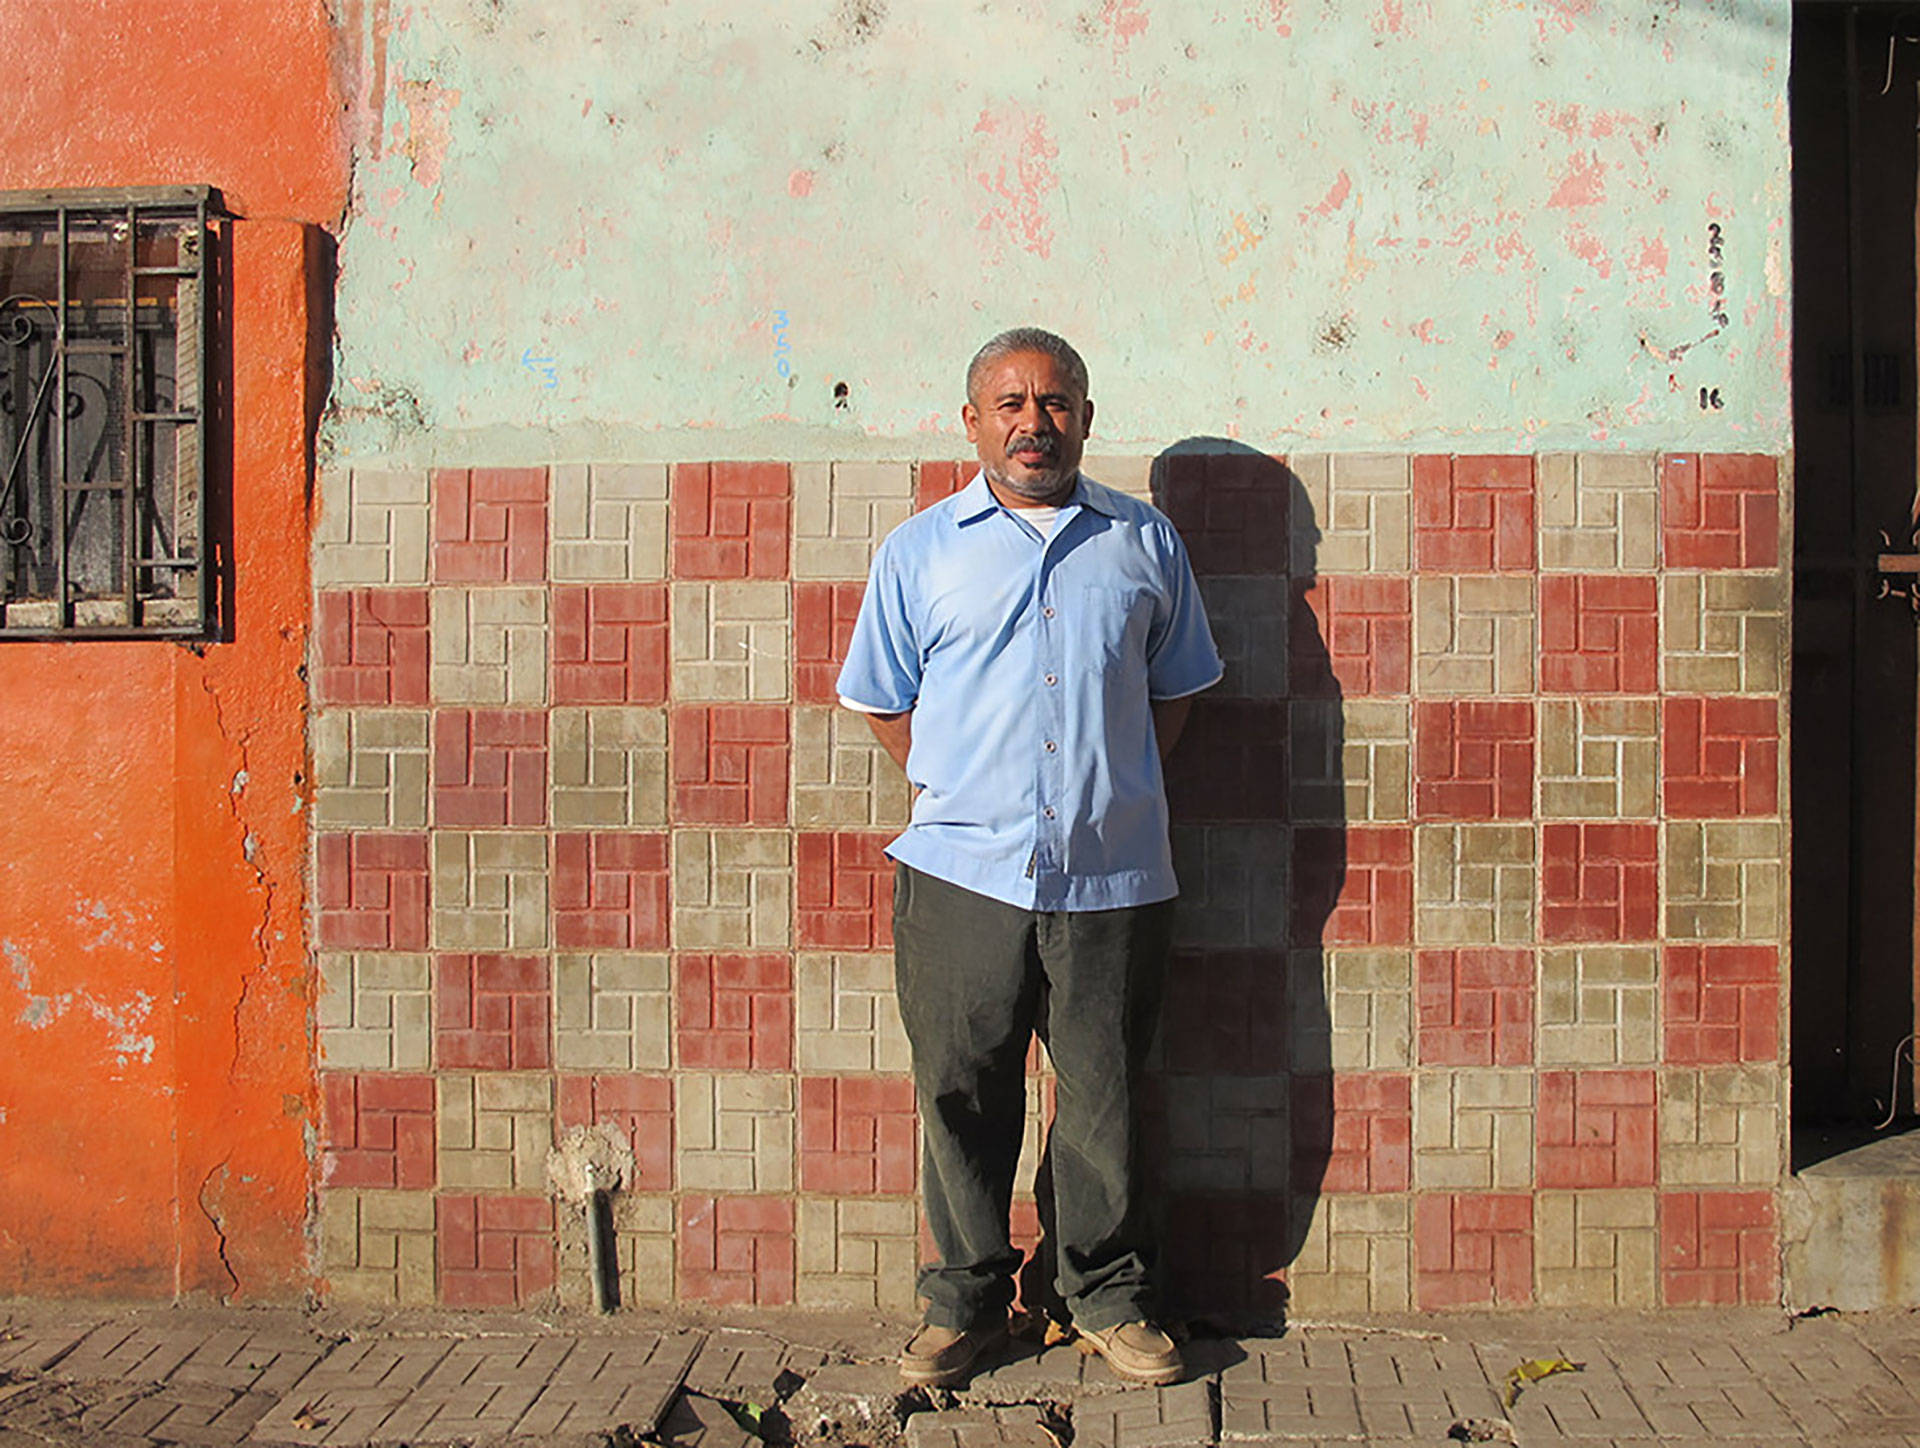 Juan Vicente in front of his grandparents' old home in Santa Ana, El Salvador. Vicente fled El Salvador's civil war in 1981 and sought refuge with his family in Bell Gardens, California. He was deported to El Salvador more than three decades later.